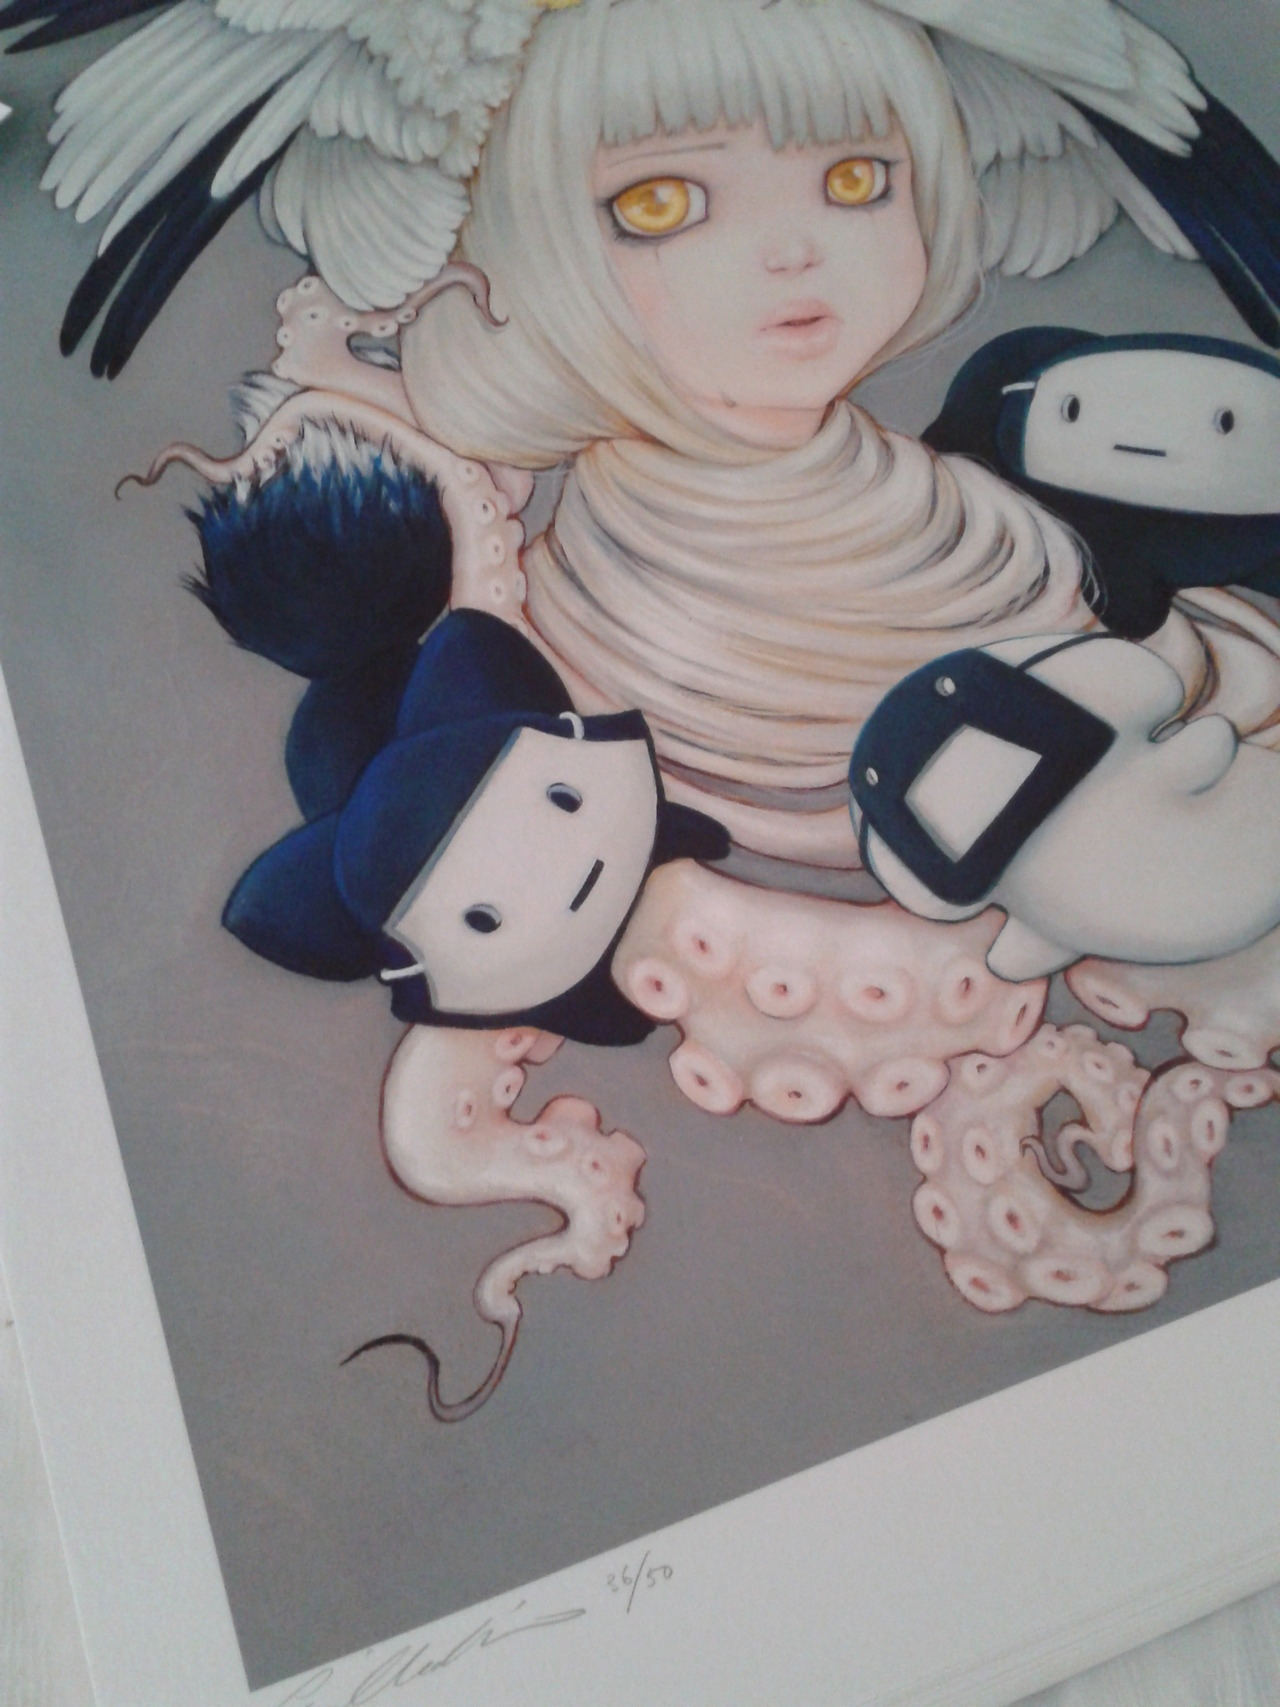 A peek at Camilla d'Errico's new Tanpopo Fine Art Print, exclusive to Munky King Gallery and SDCC